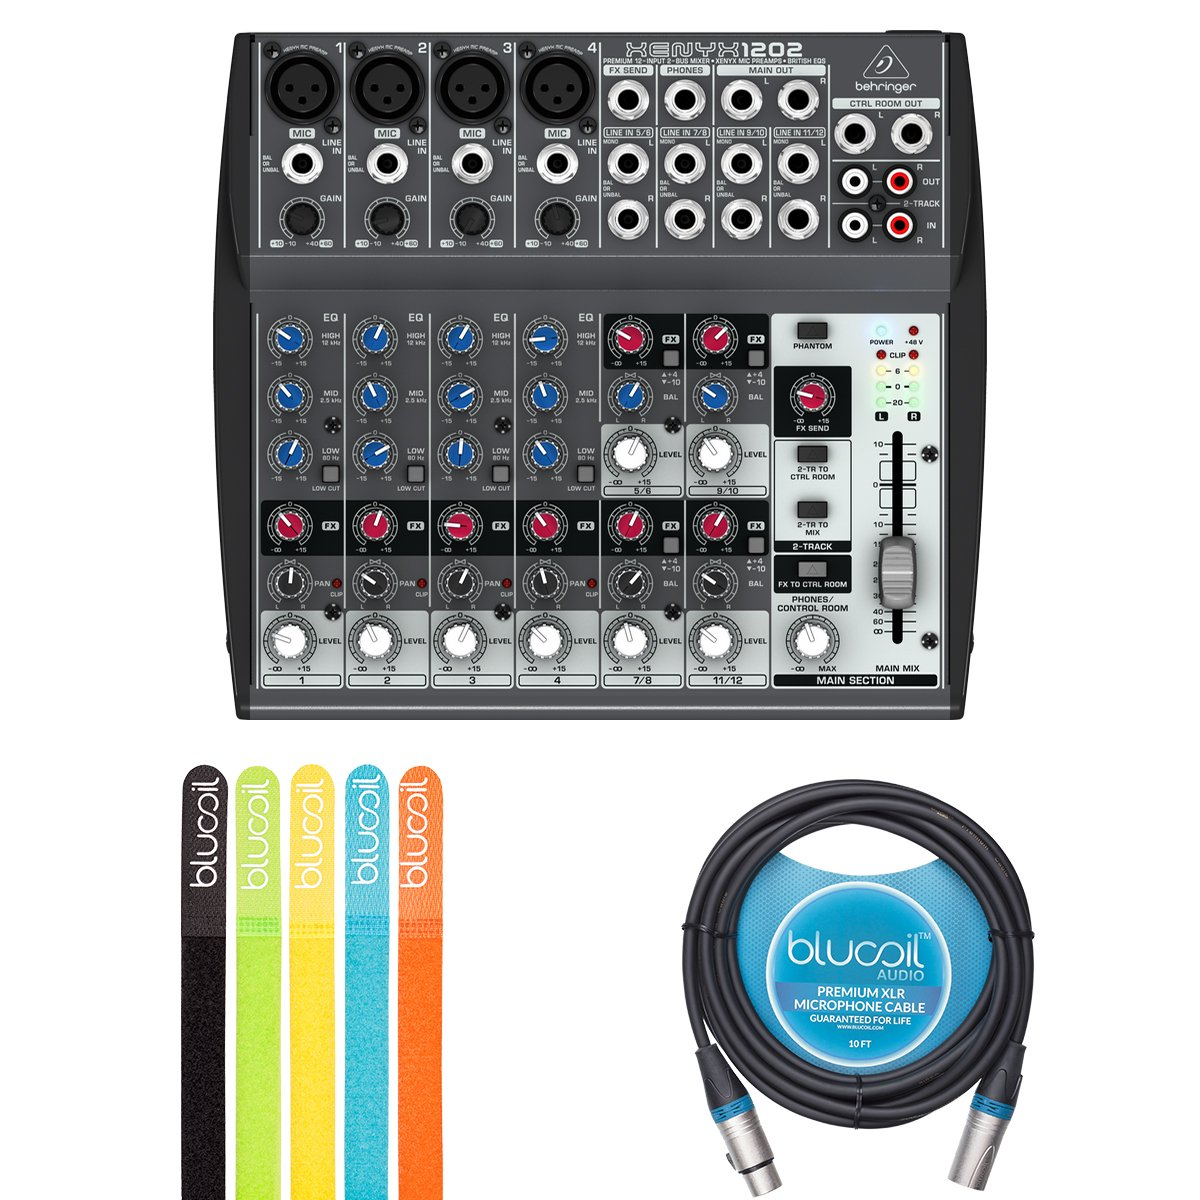 Behringer XENYX 1202 2-Bus Mixer with Mic Preamps, 3-Band EQ BUNDLED WITH Blucoil 10-Ft Balanced XLR Cable AND 5 Pack of Cable Ties by blucoil